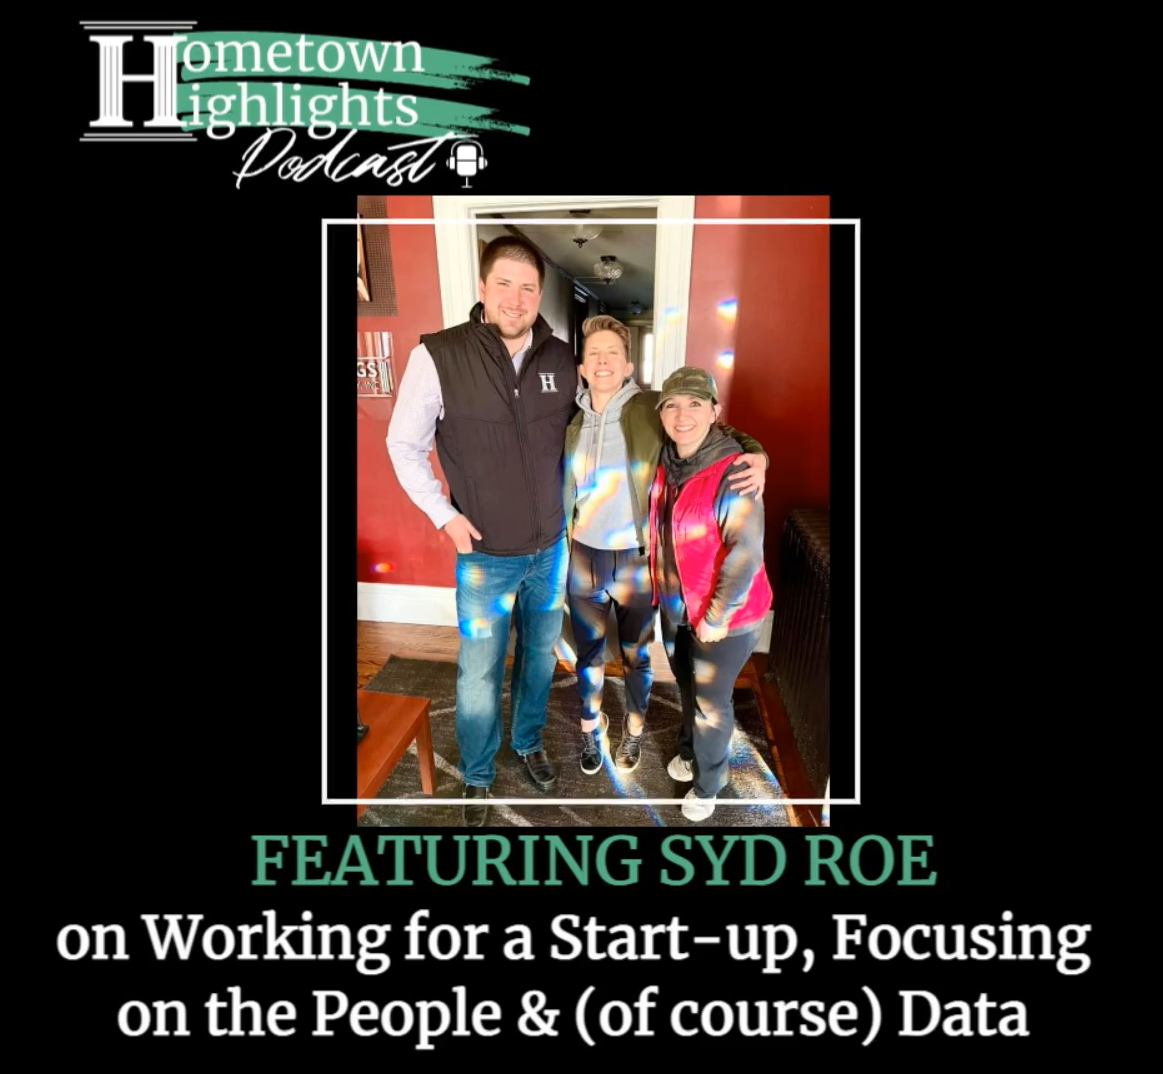 Episode 7: Working for a Startup, Focusing on the People & (of course) Data with Syd Roe | Hometown Highlights Podcast